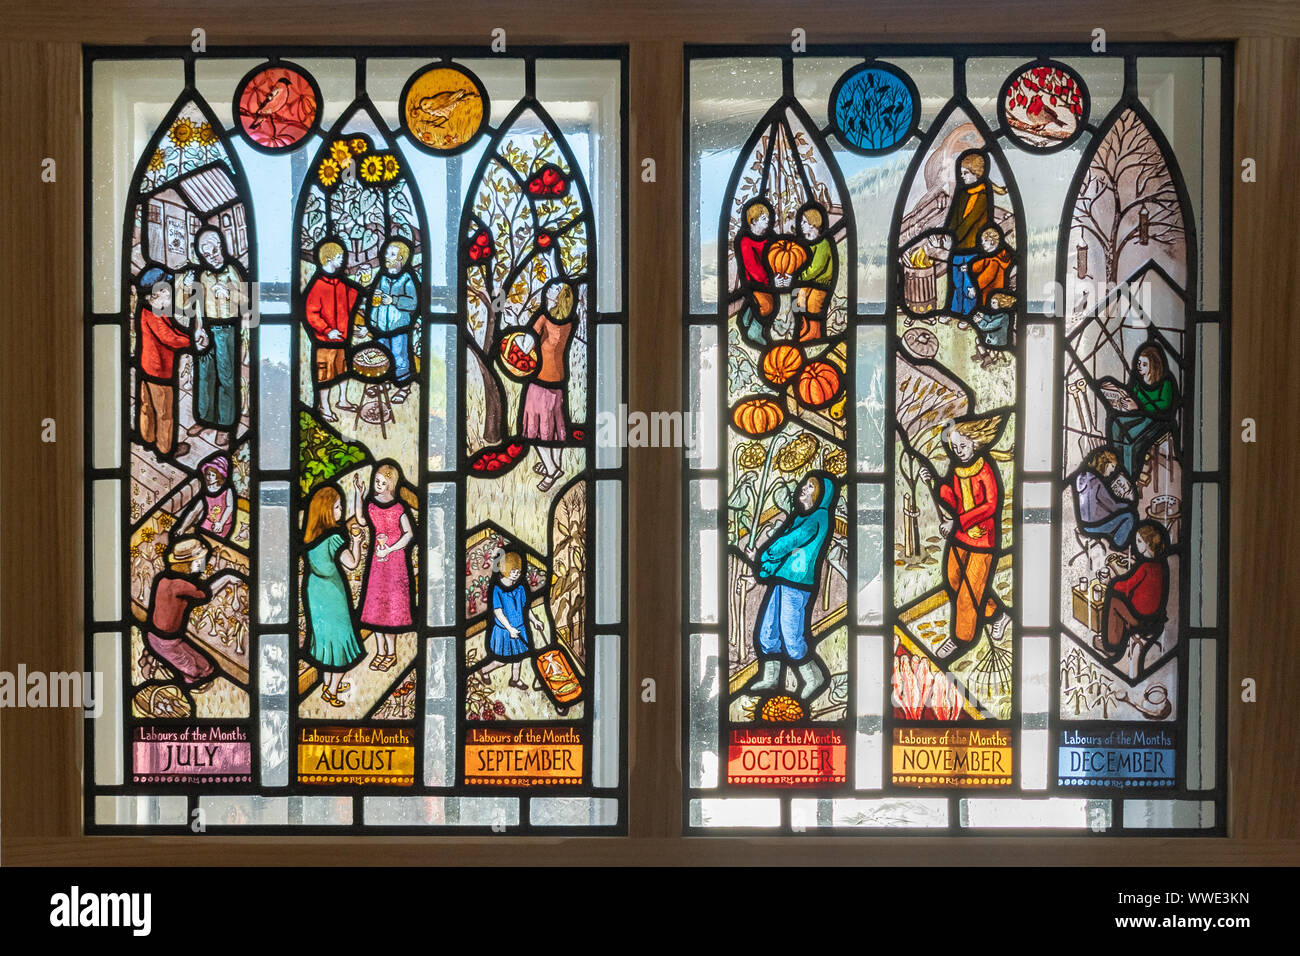 stained-glass-window-depicting-labours-of-the-month-on-display-in-godalming-museum-surrey-uk-WWE3KN.jpg